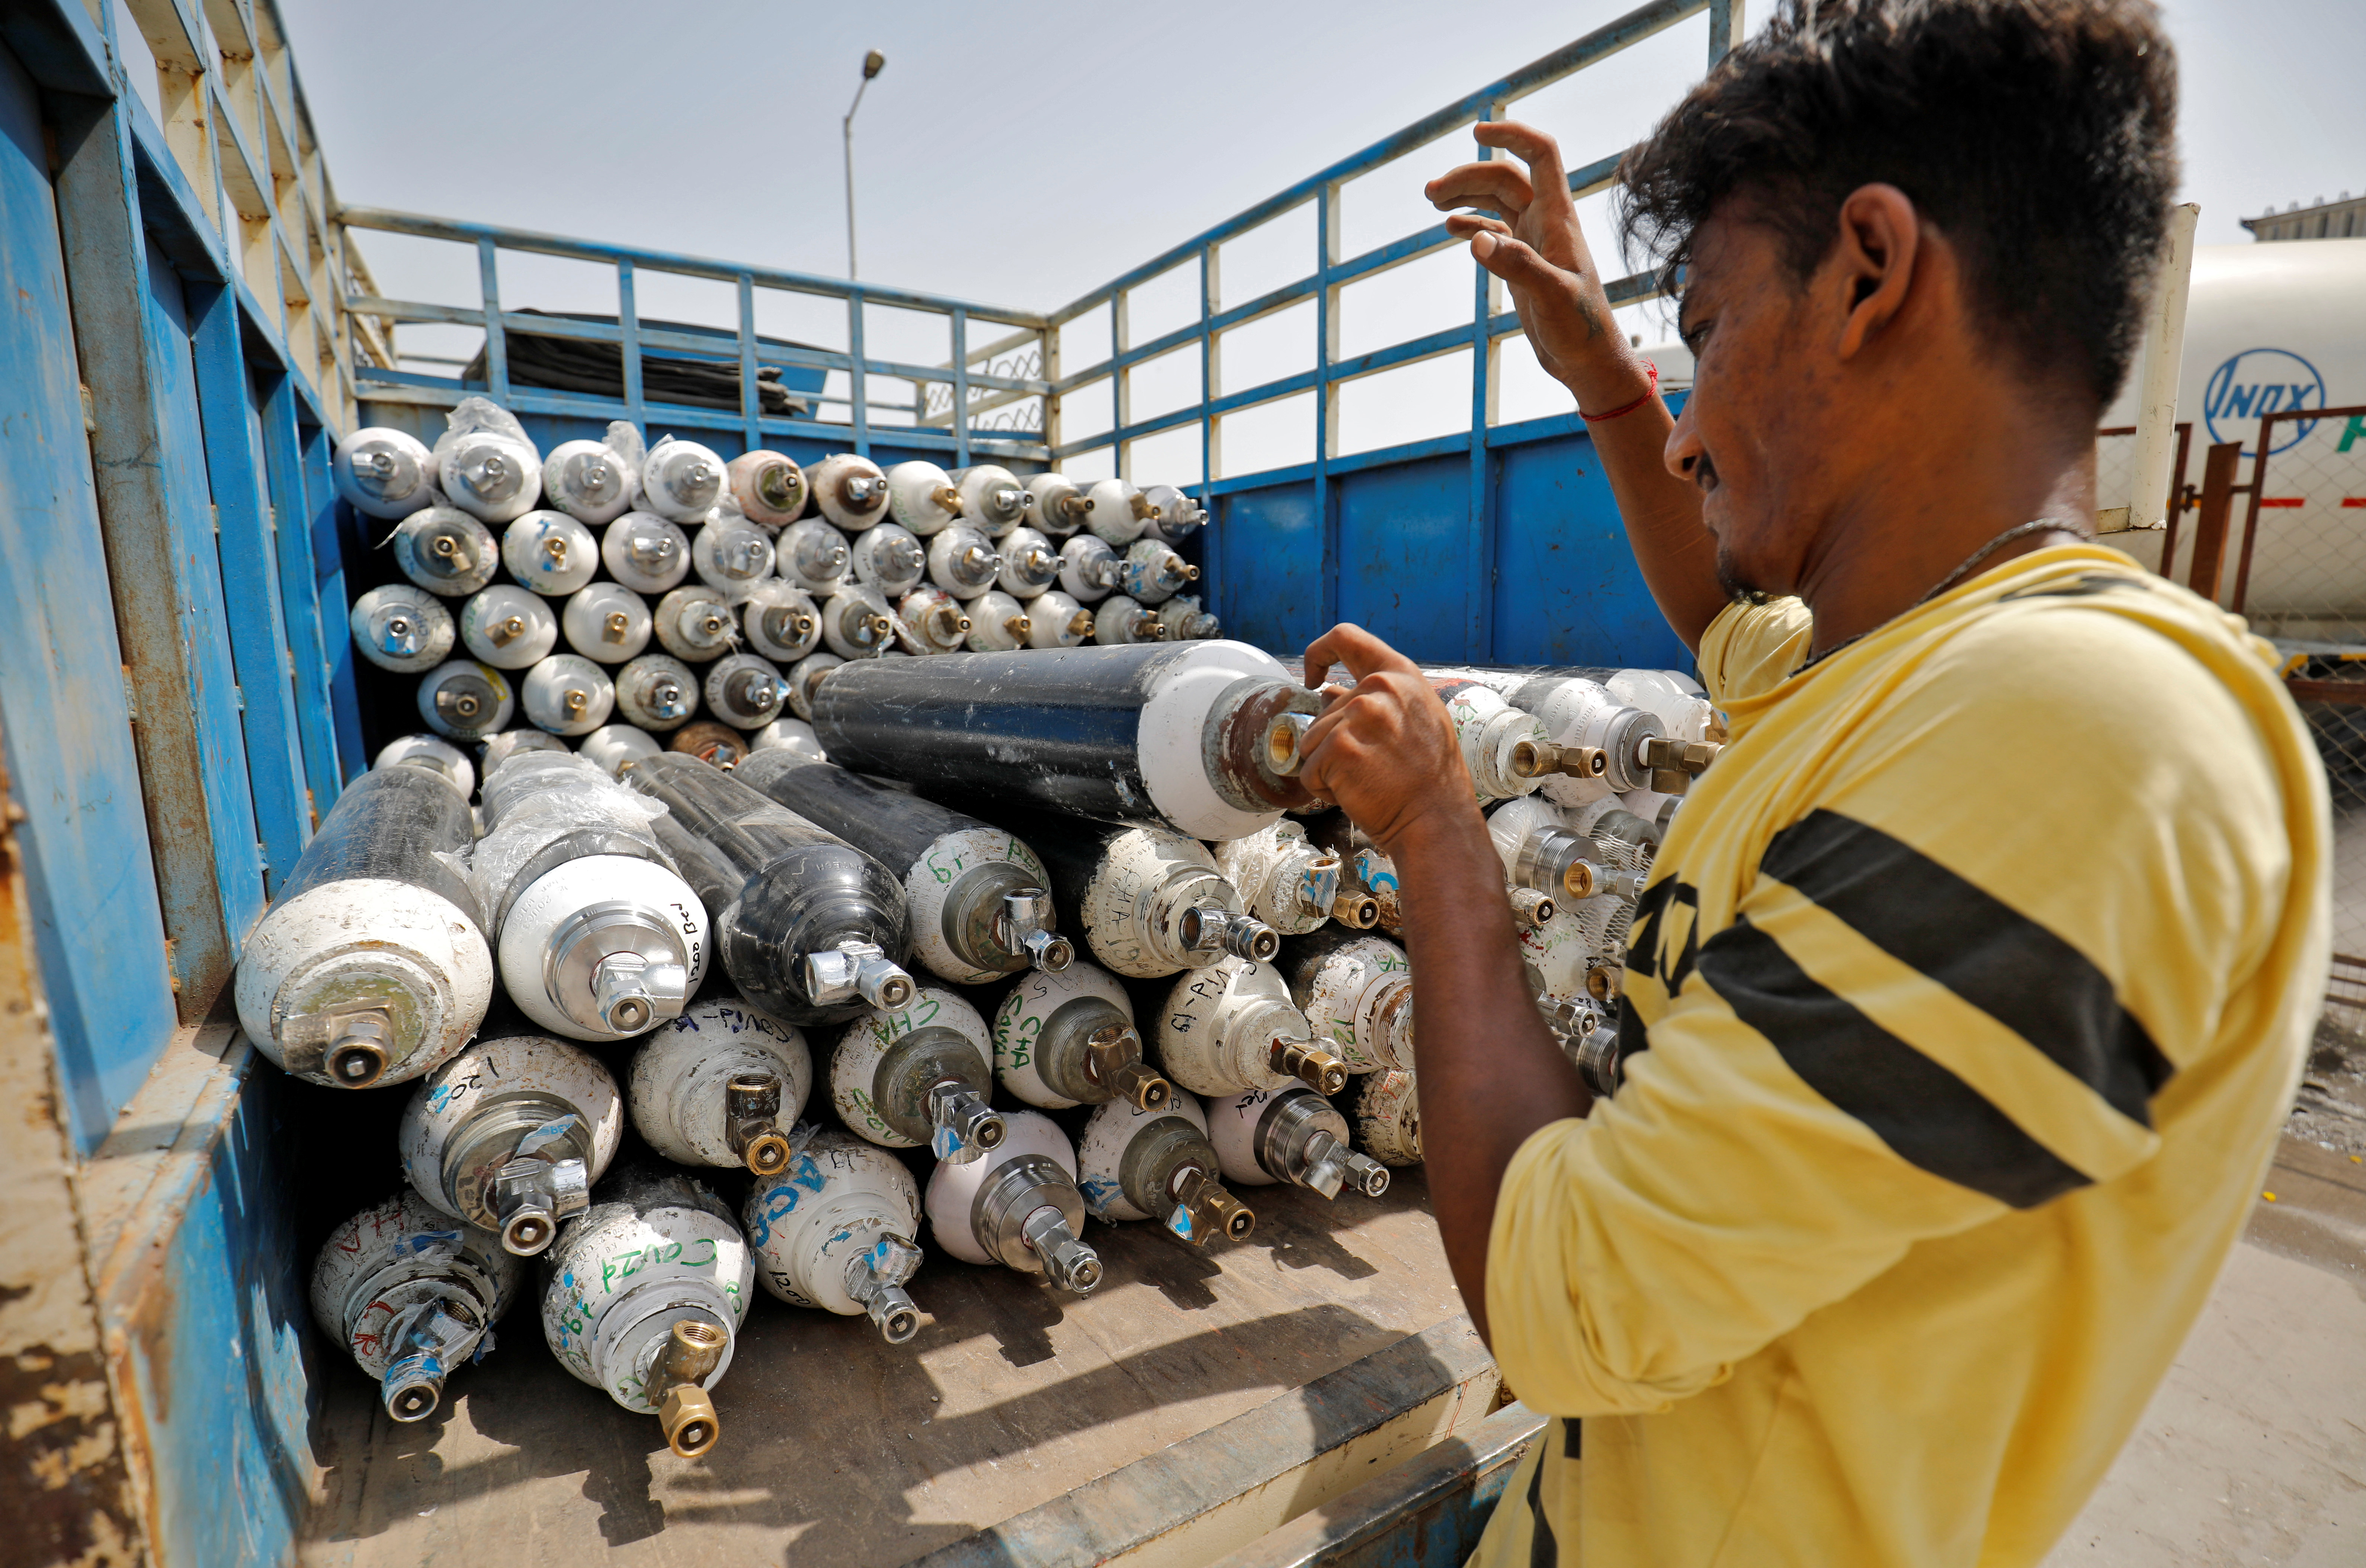 A worker loads empty oxygen cylinders onto a supply van to be transported to a filling station, at a COVID-19 hospital, amidst the spread of the coronavirus disease (COVID-19) in Ahmedabad, India, April 22, 2021. REUTERS/Amit Dave